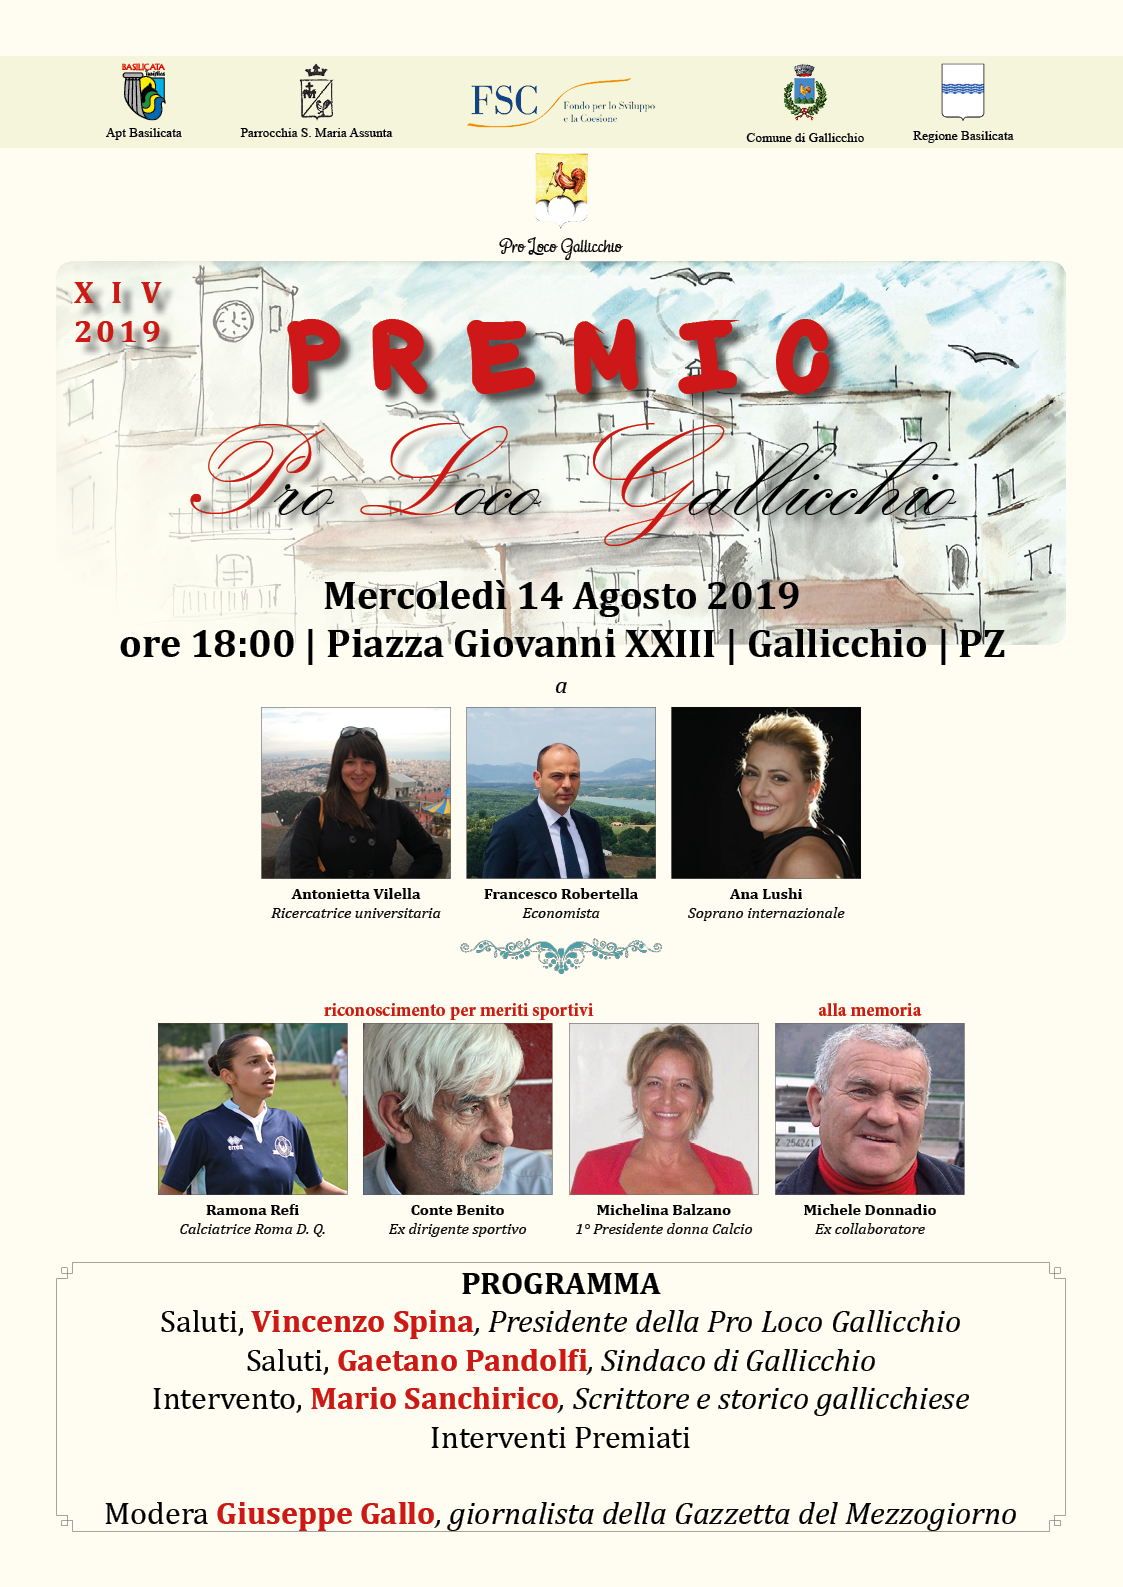 Estate Gallicchiese 2019 8